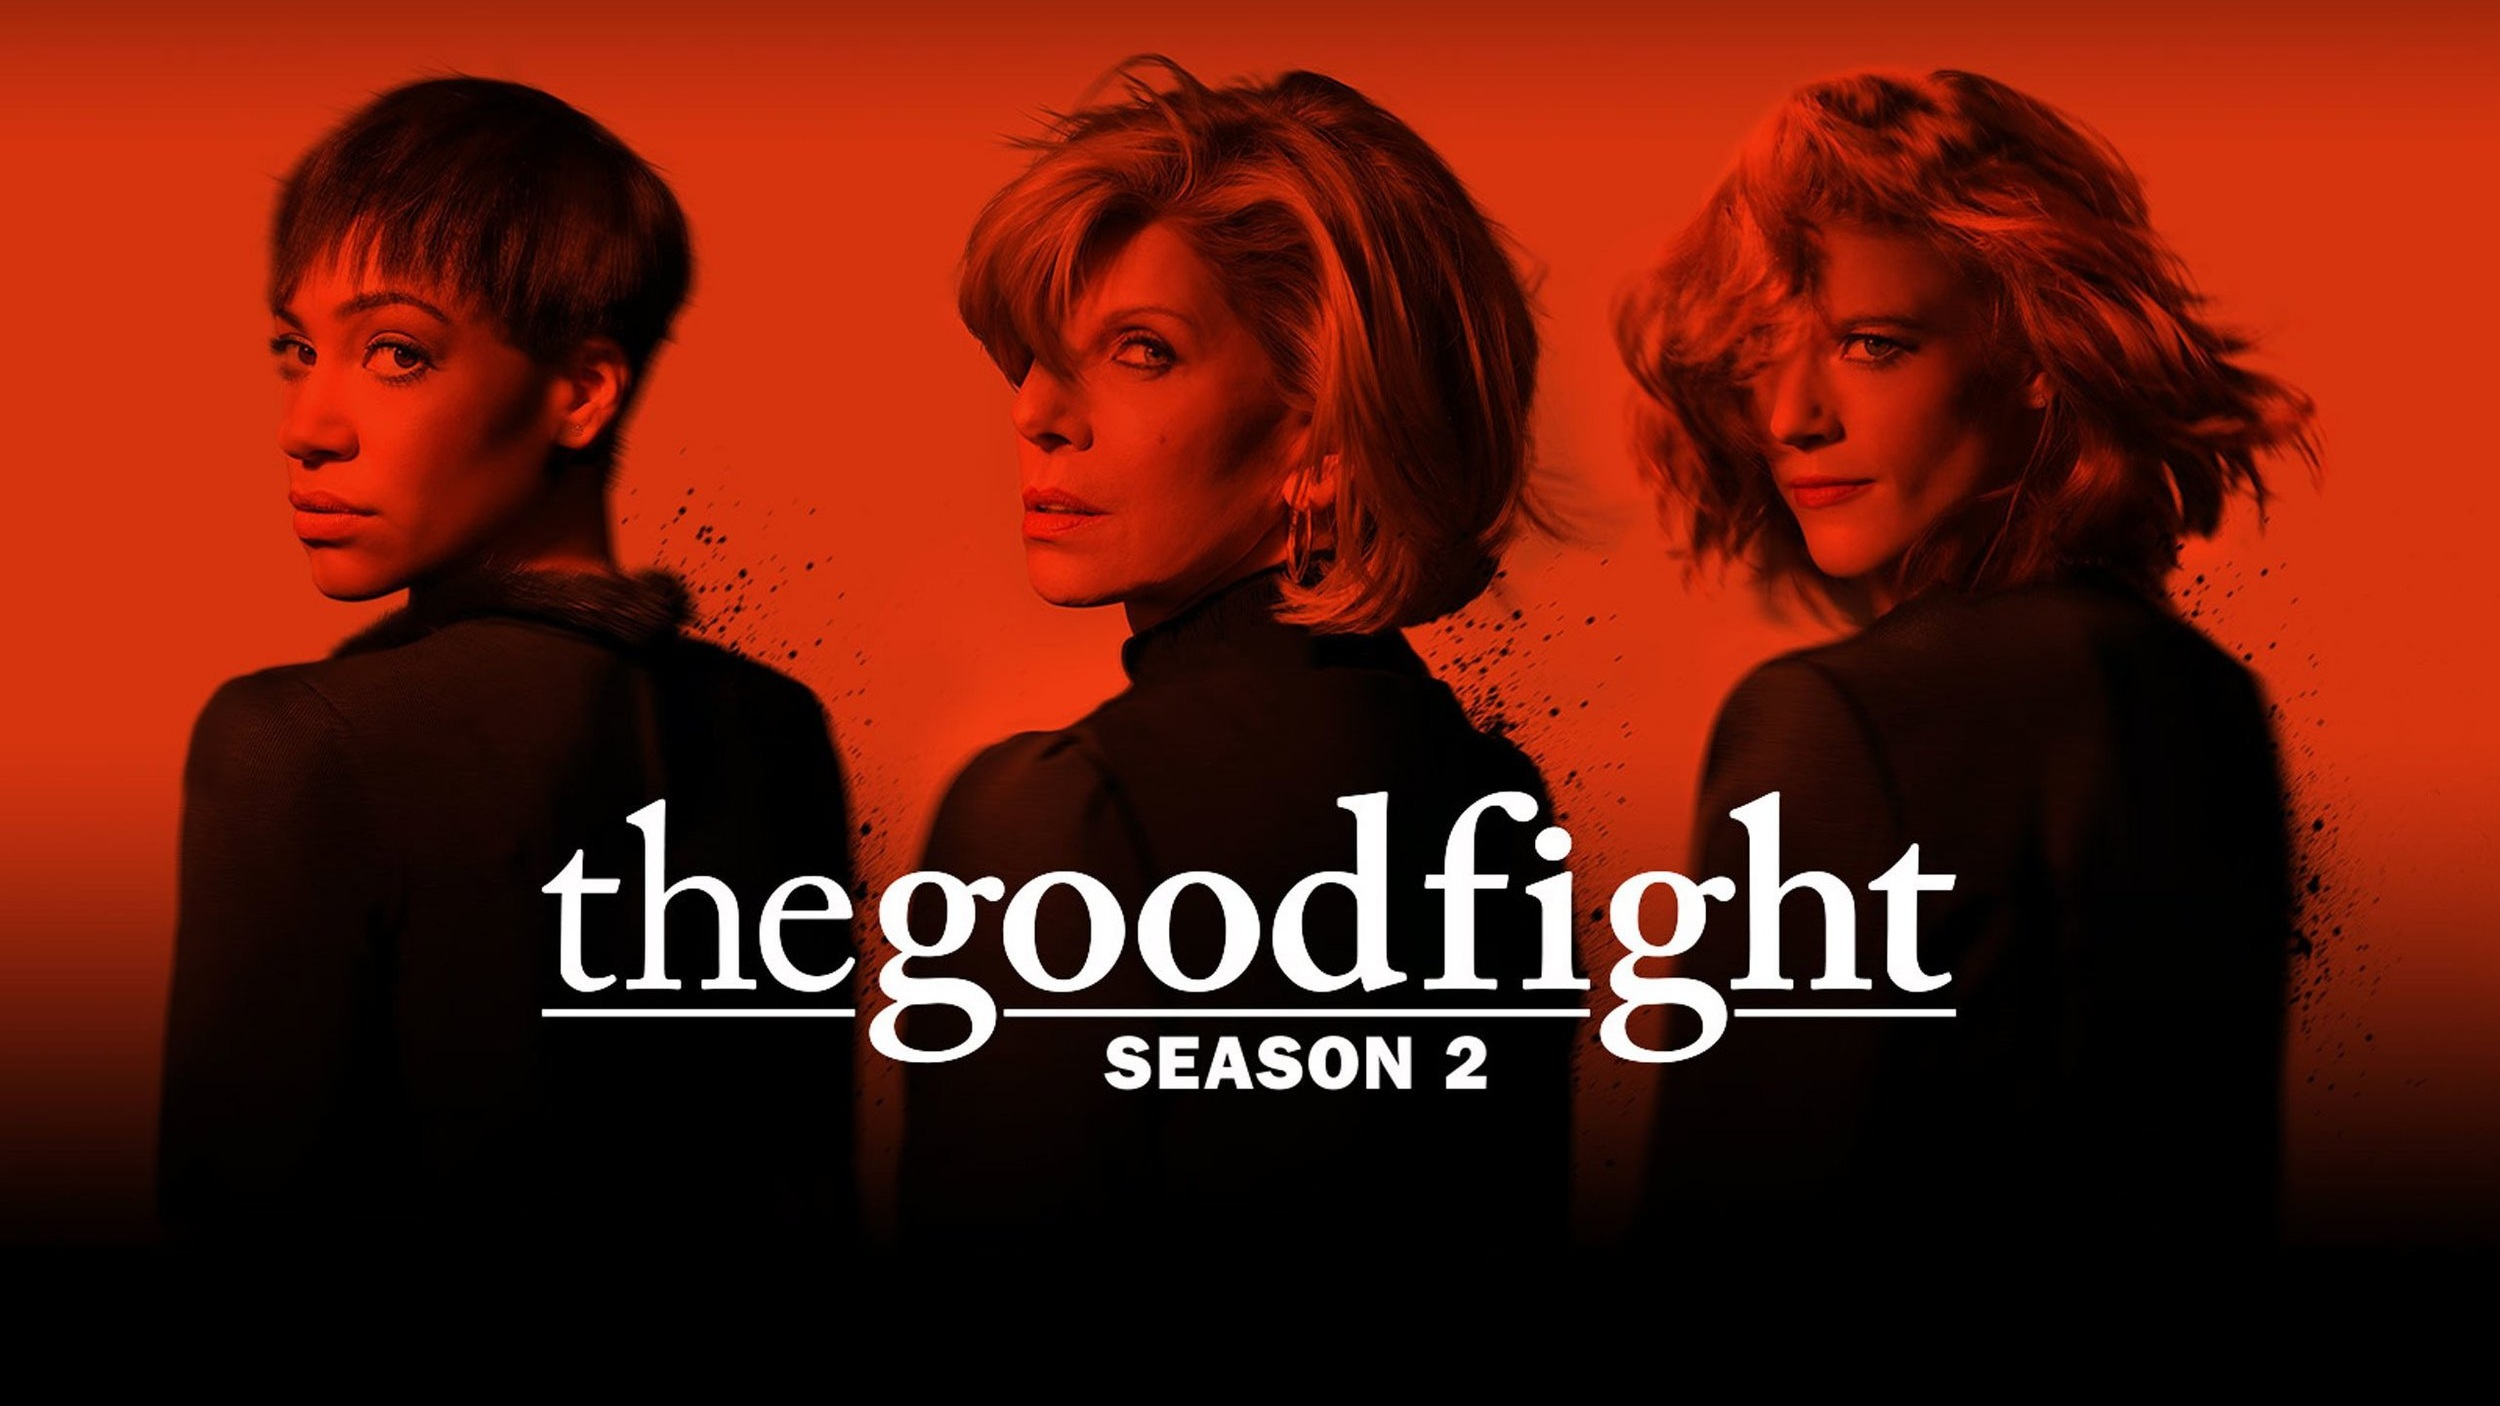 The Good Fight returns for season three  Image - SBS